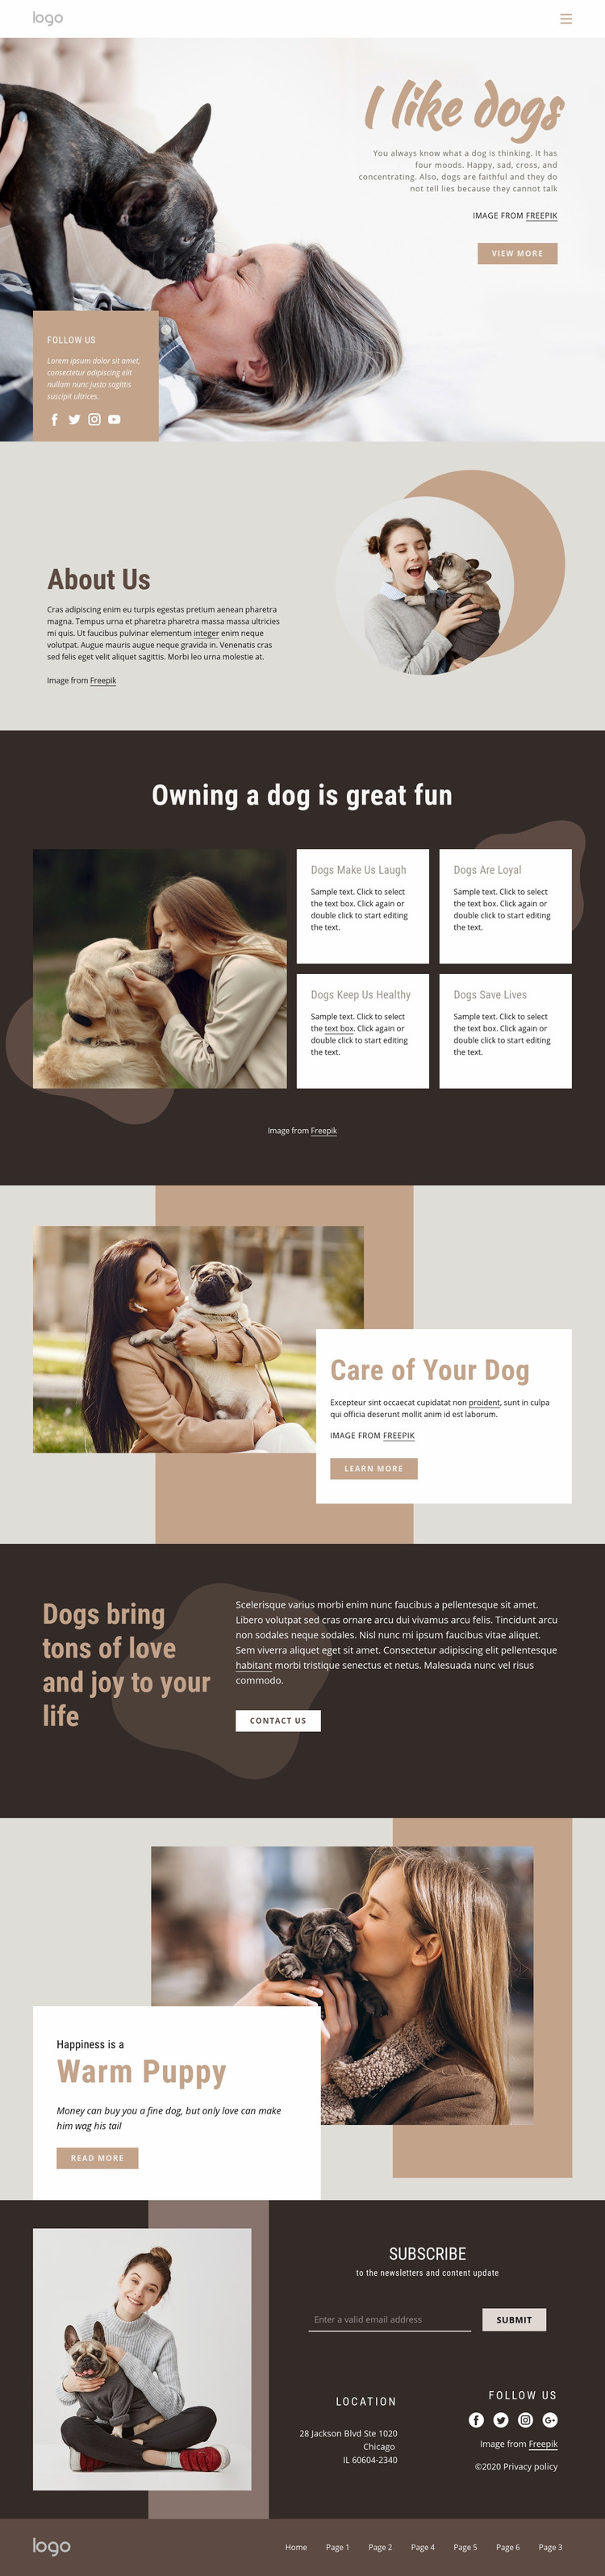 All about dogs Web Page Design